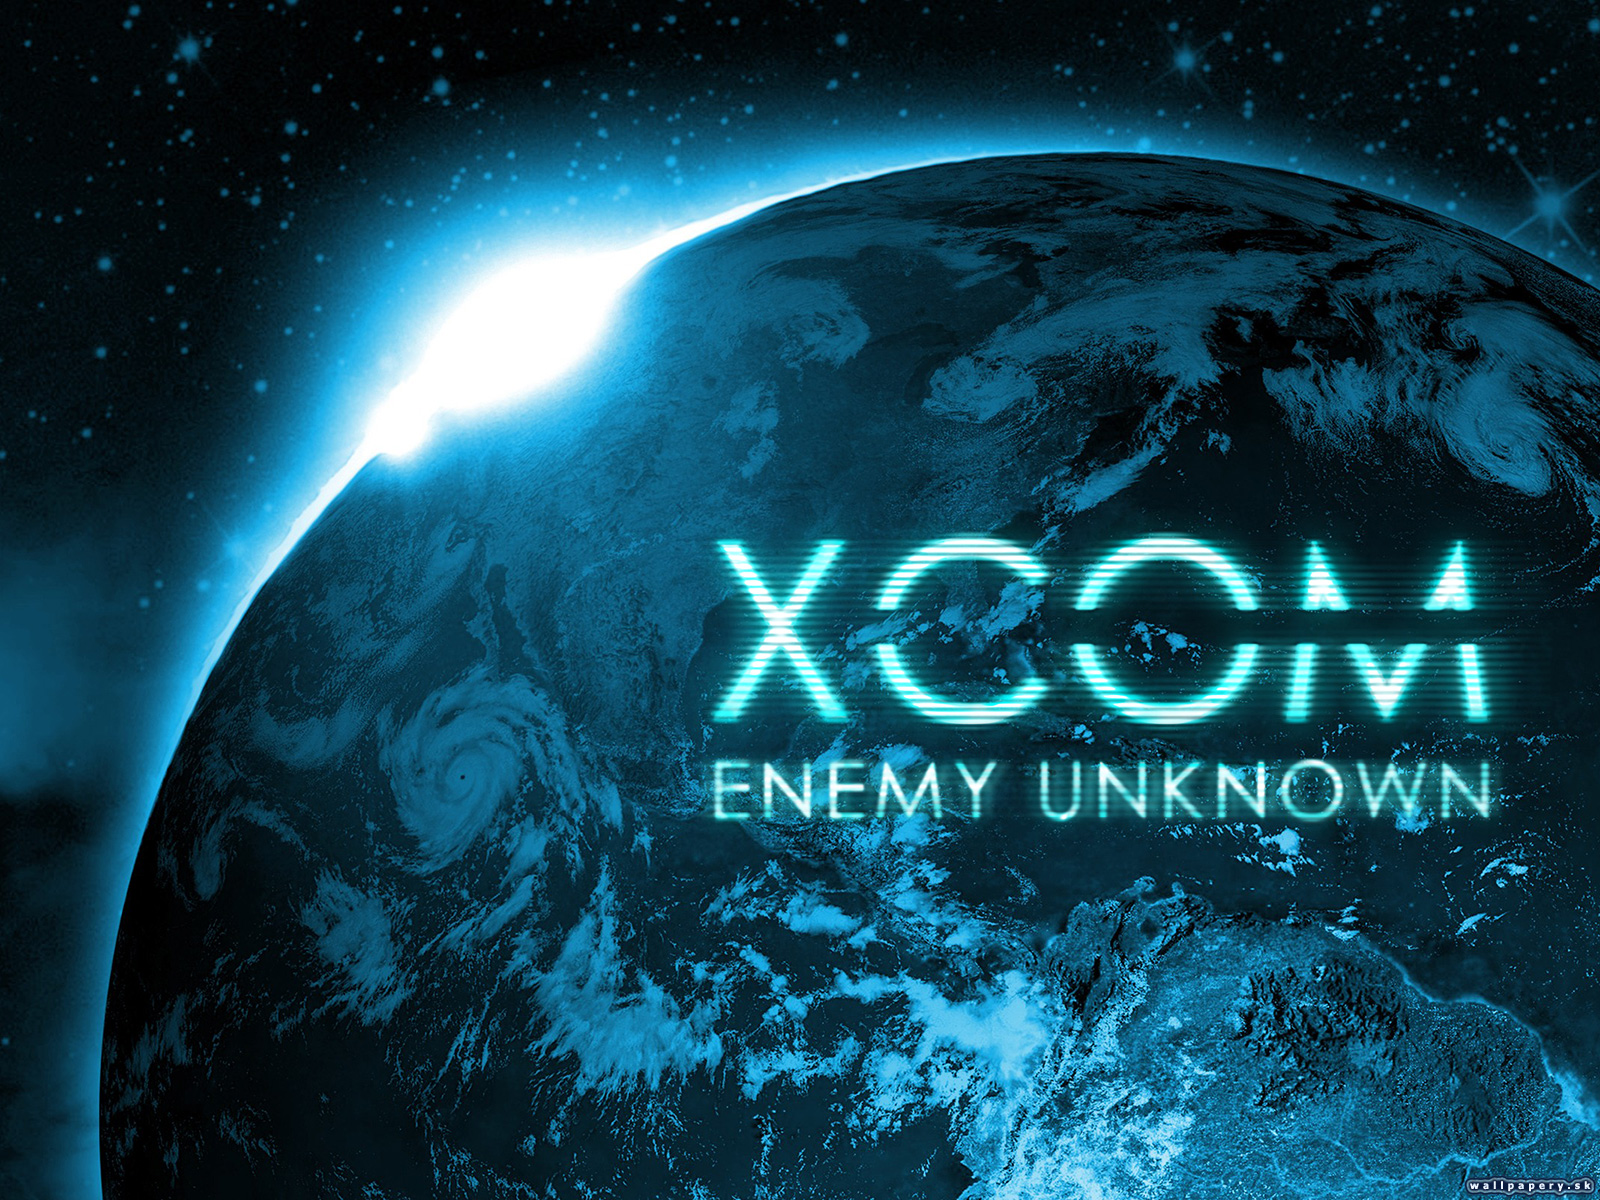 XCOM: Enemy Unknown - wallpaper 2